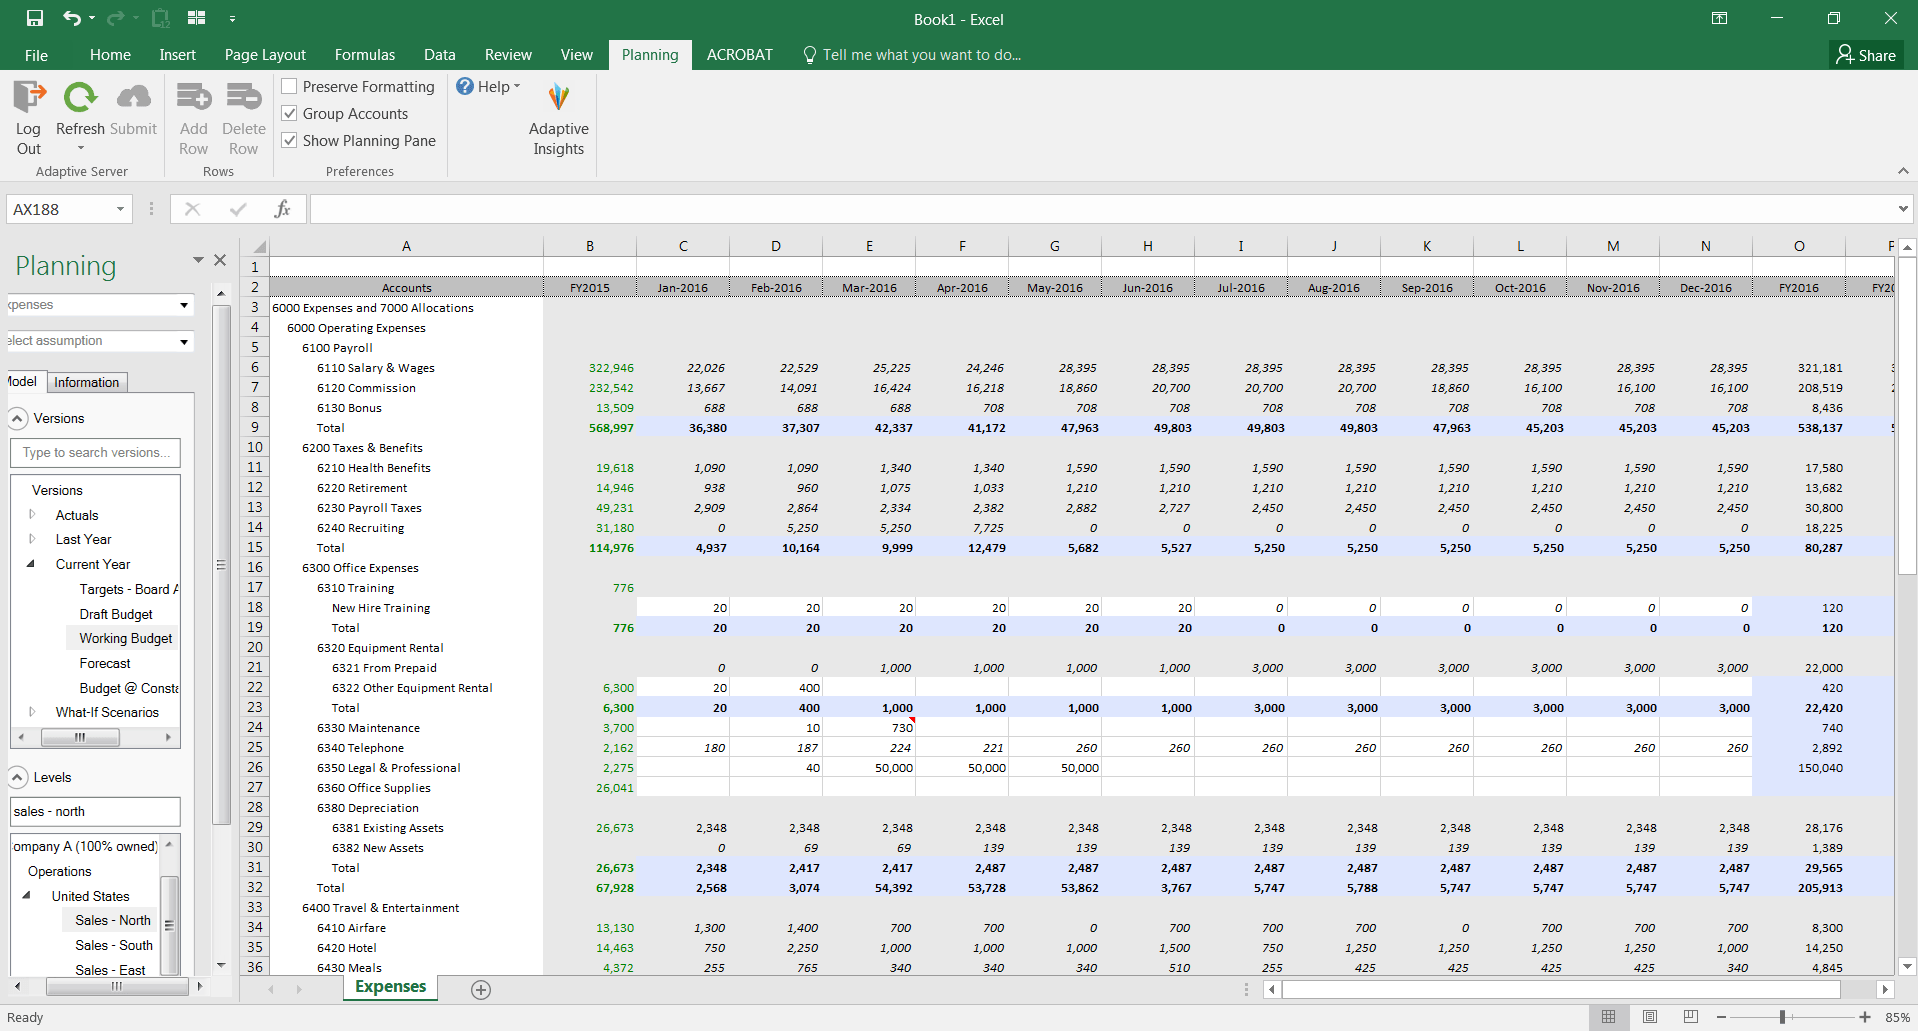 Excel Interface For Budgeting Forecasting And Planning